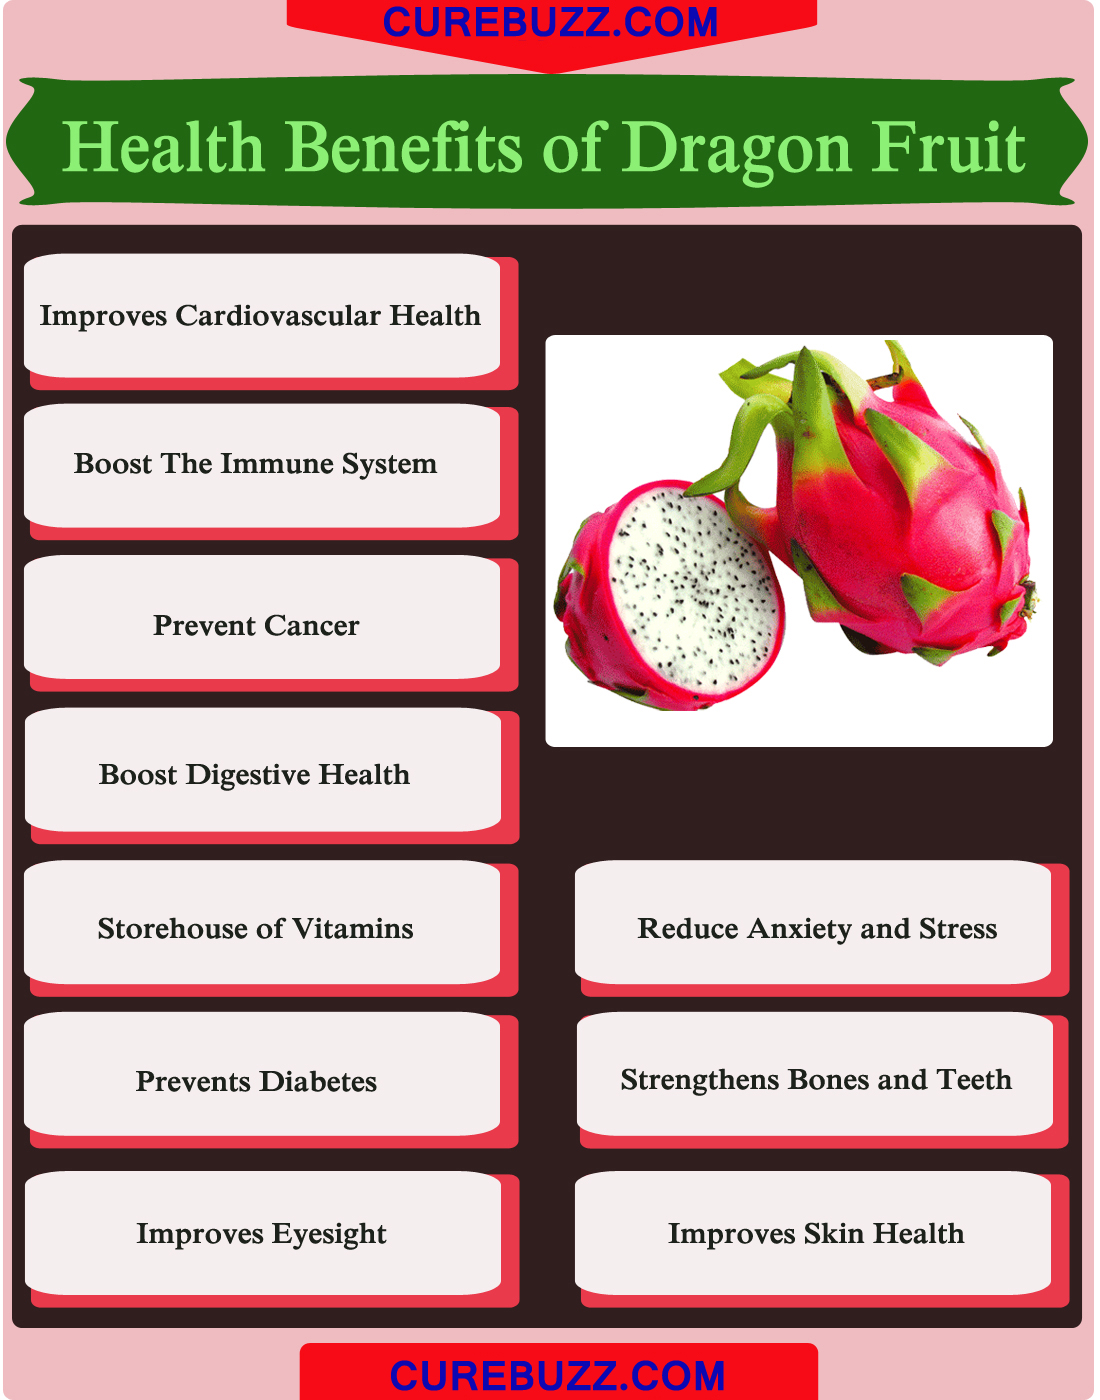 10 health benefits of dragon fruit : getatoz